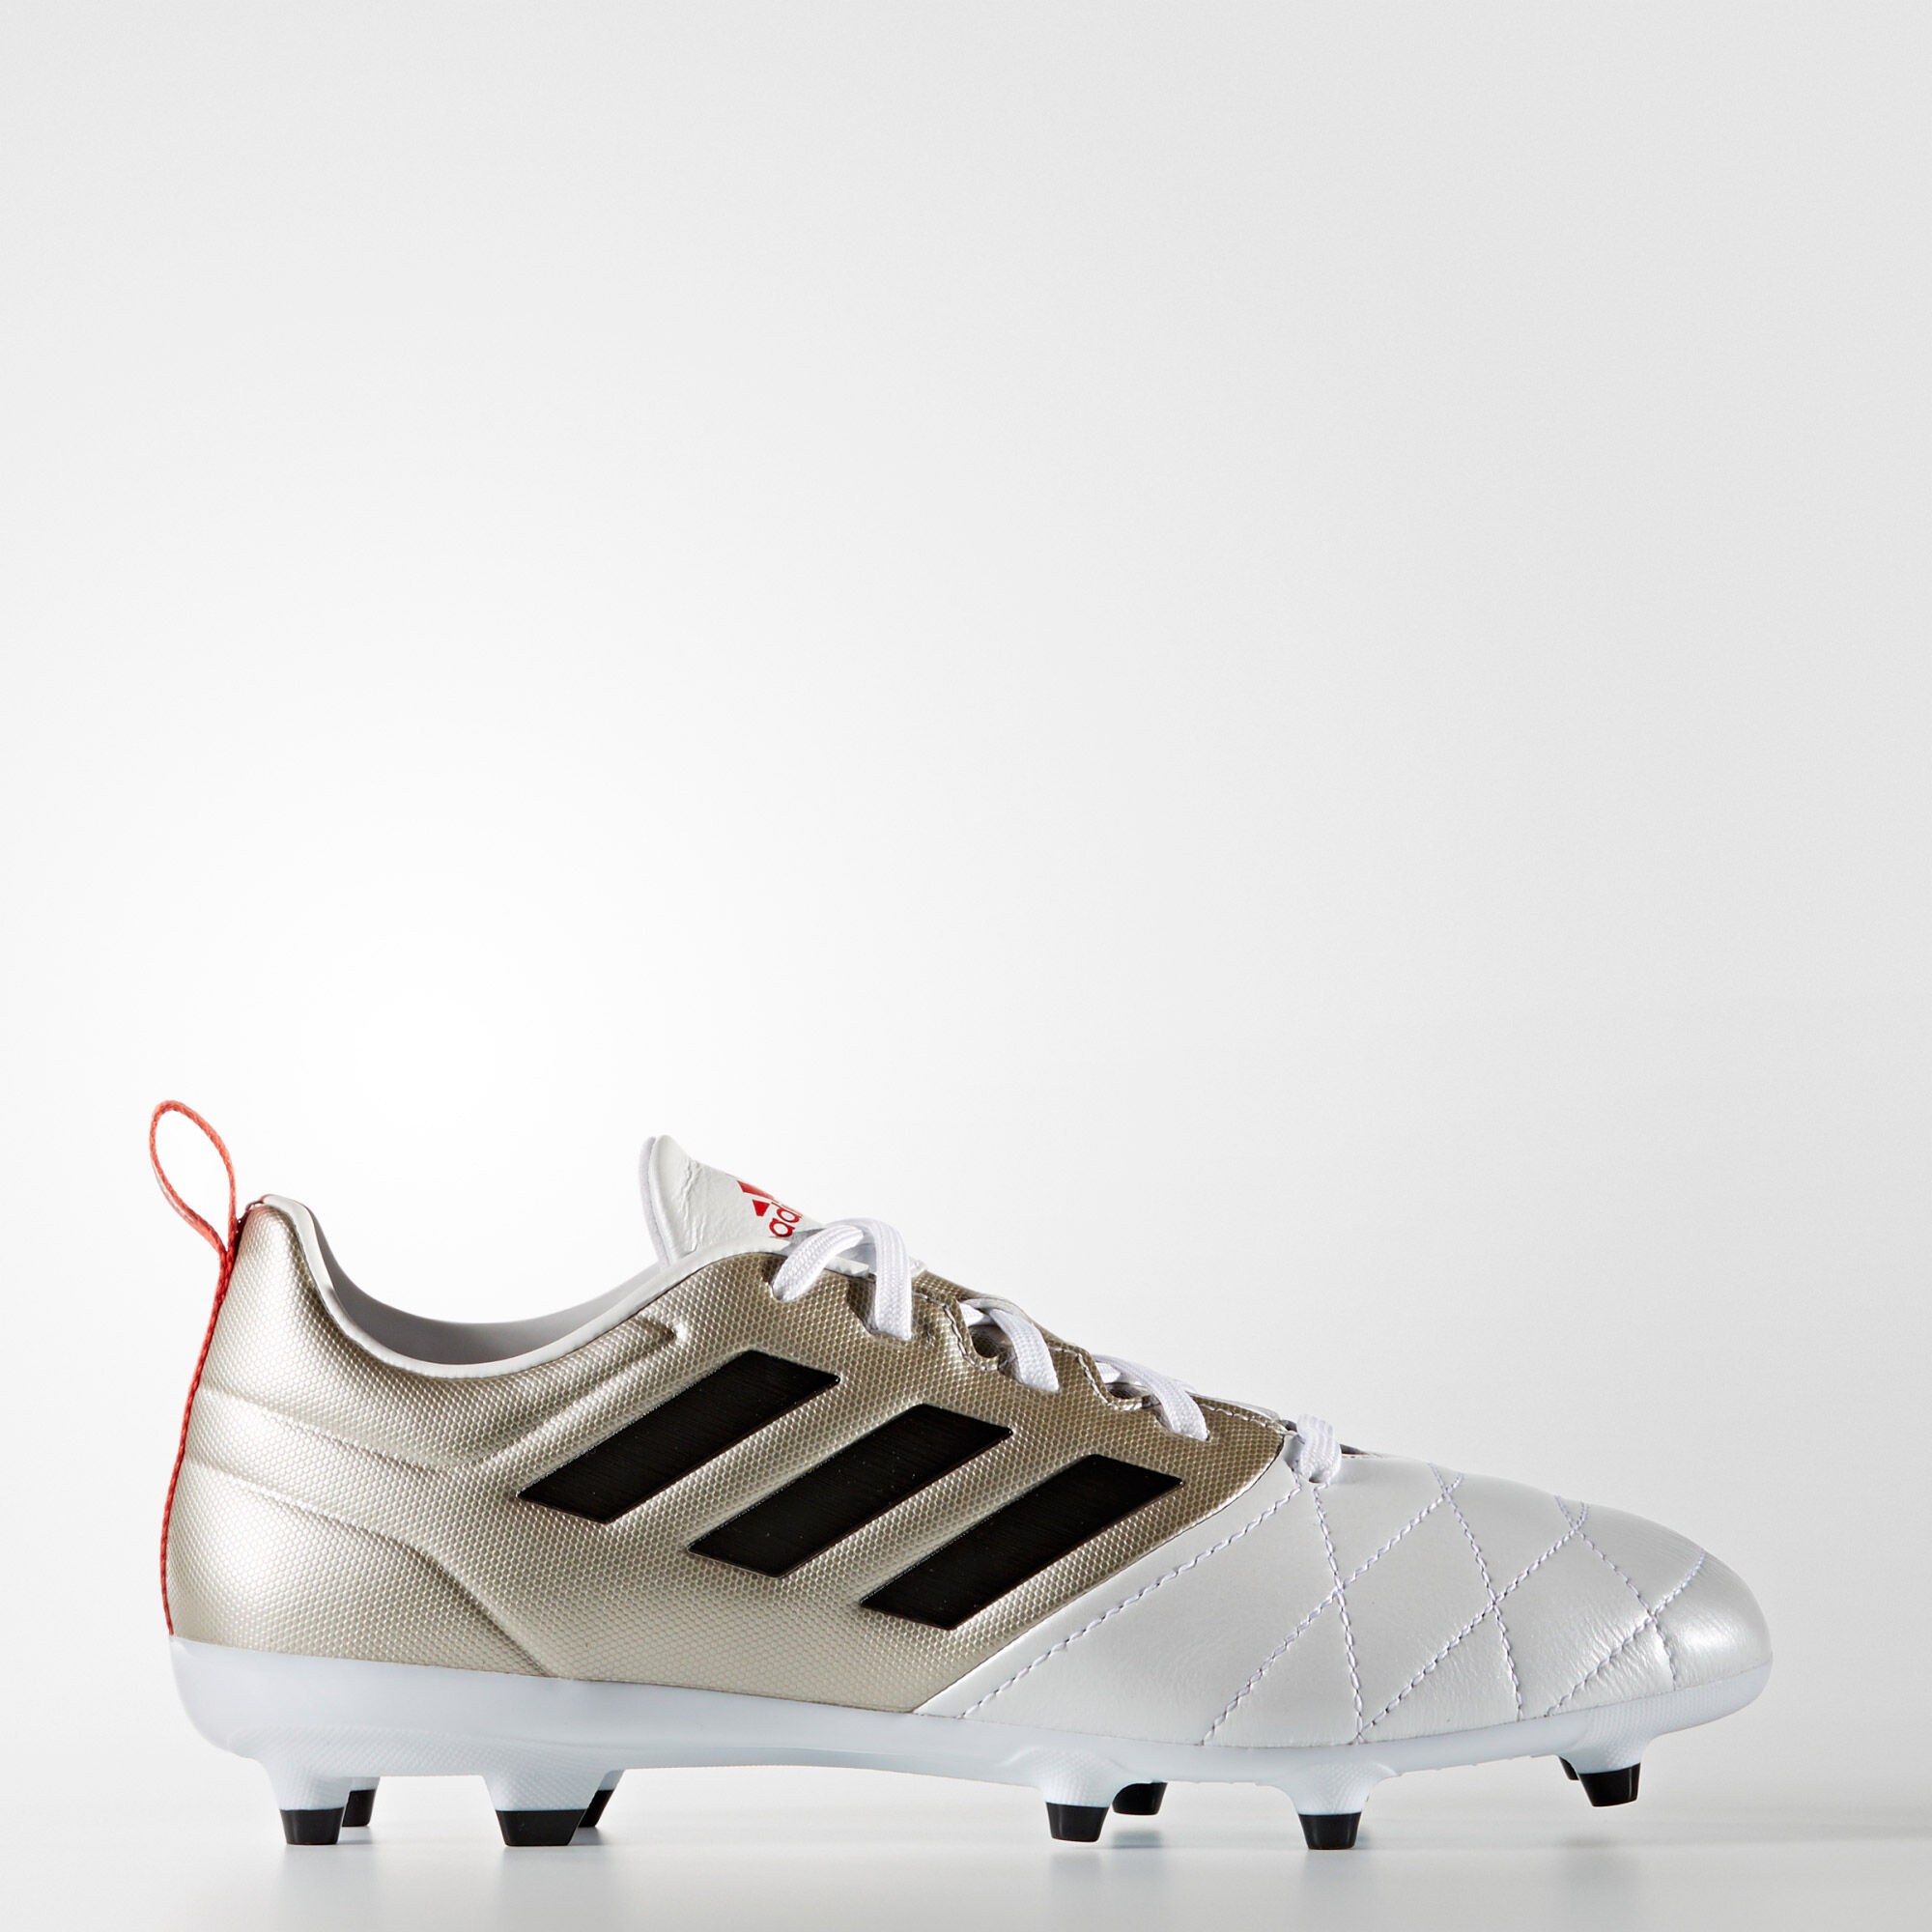 adidas shoes soccer